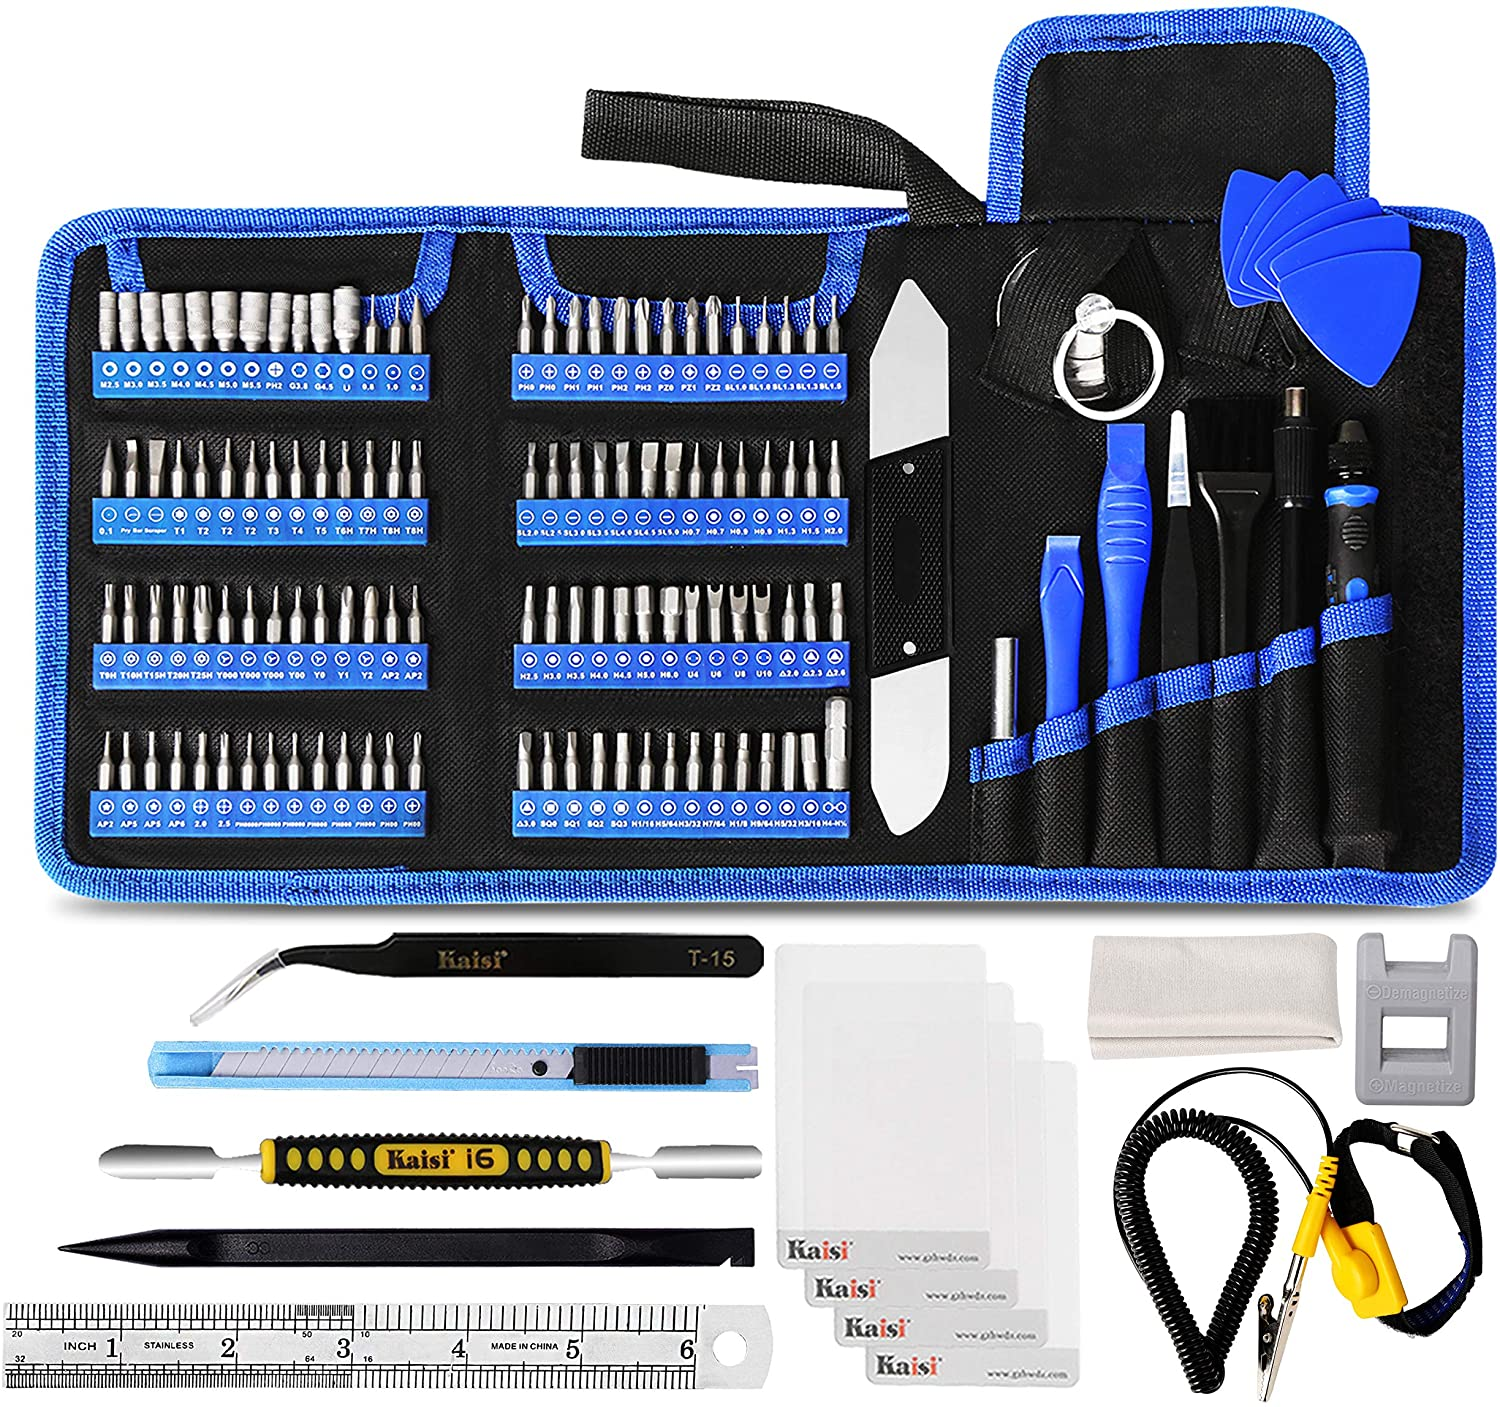 Kaisi 139 in 1 Electronics Repair Tool Kit Professional Precision Screwdriver Set Magnetic Drive Kit with Portable Bag for Repair Cellphone, iPhone, Macbook, Computer, Tablet, iPad, Xbox, Game Console